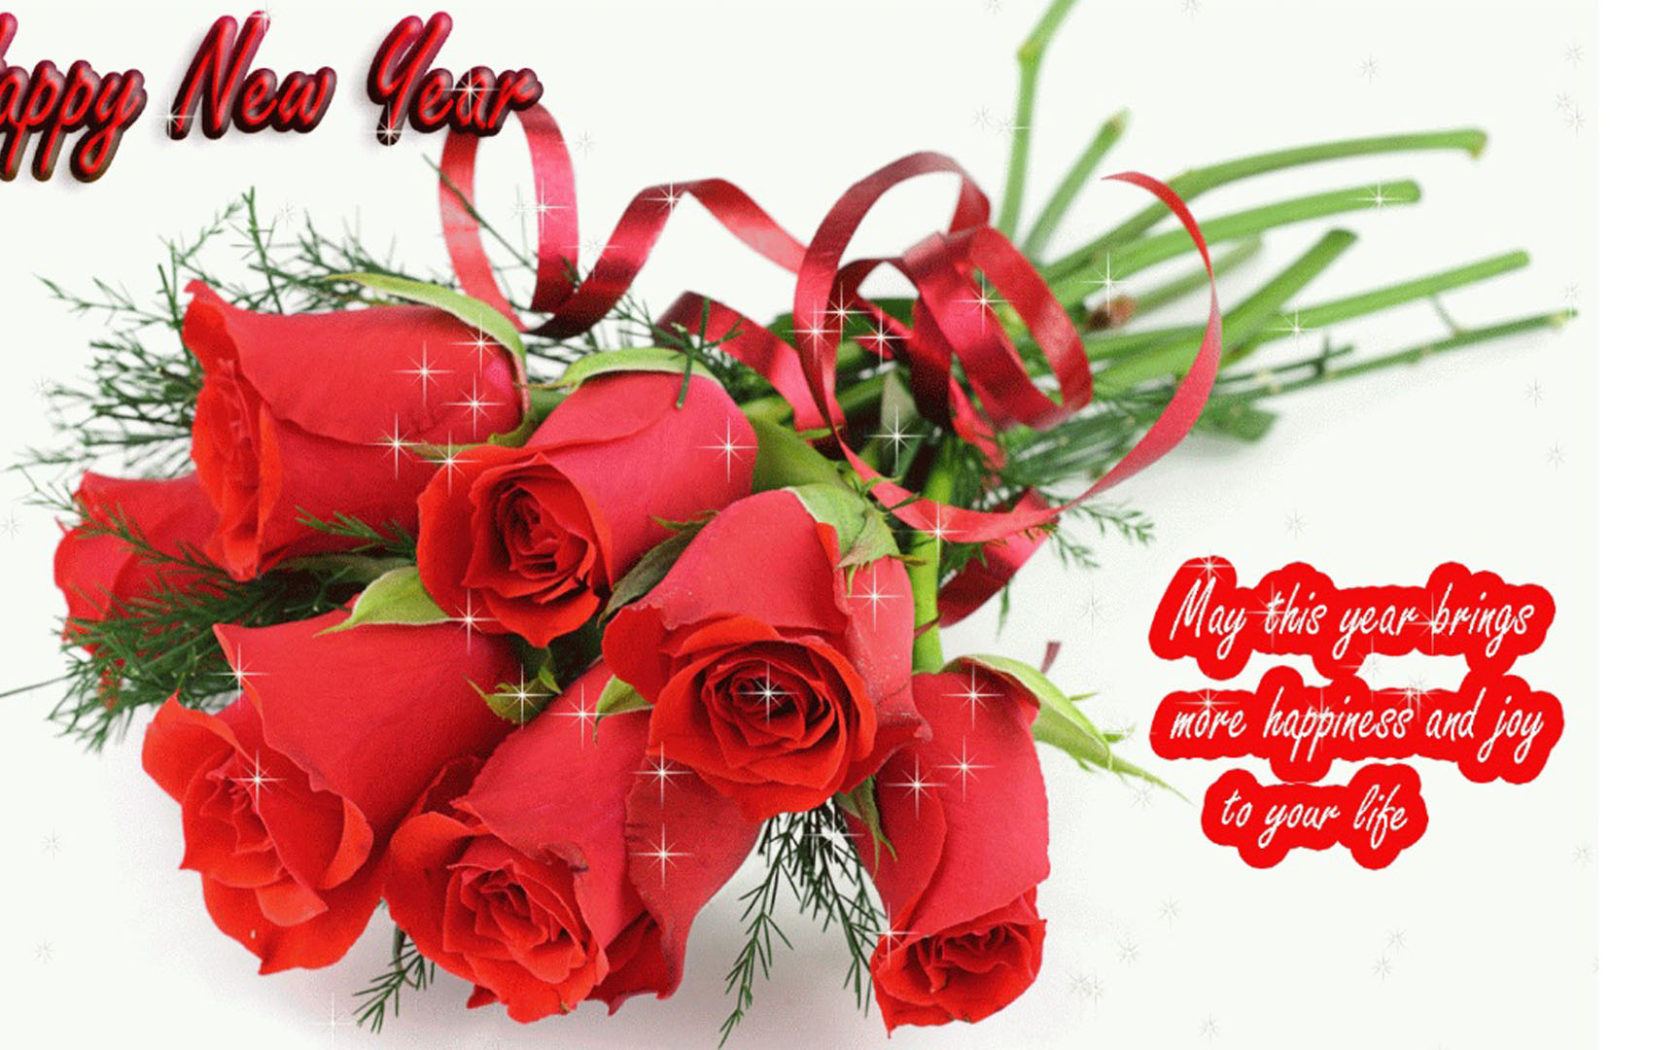 Happy New Year 2020 Red Rose Romantic Love Wallpaper Hd 1920x1080 1680x1050